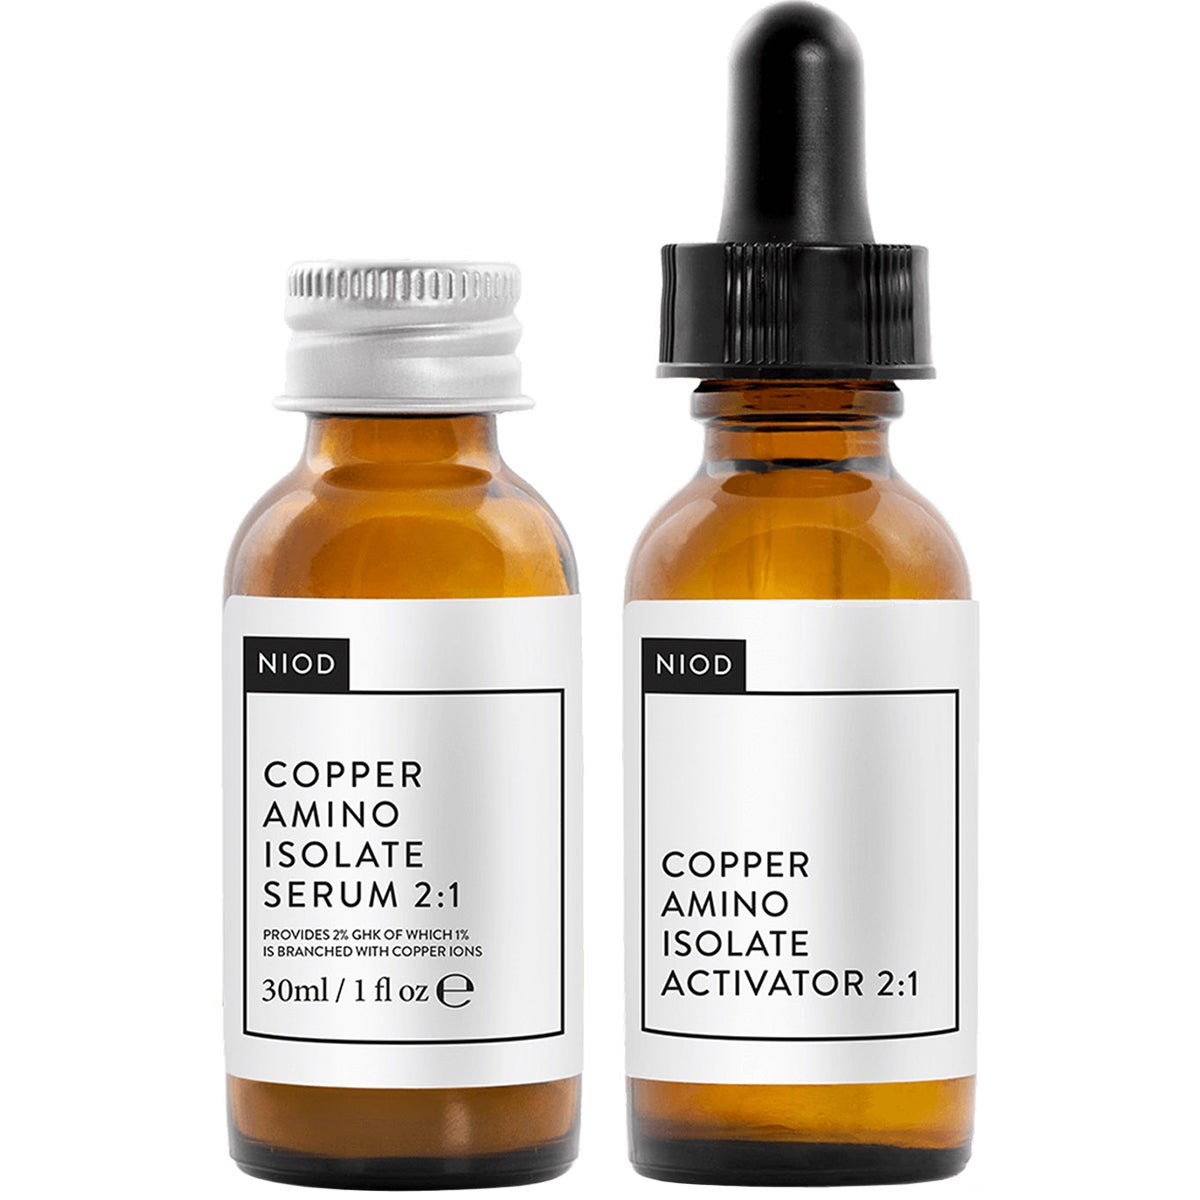 NIOD Copper Amino Isolate Serum 2:1